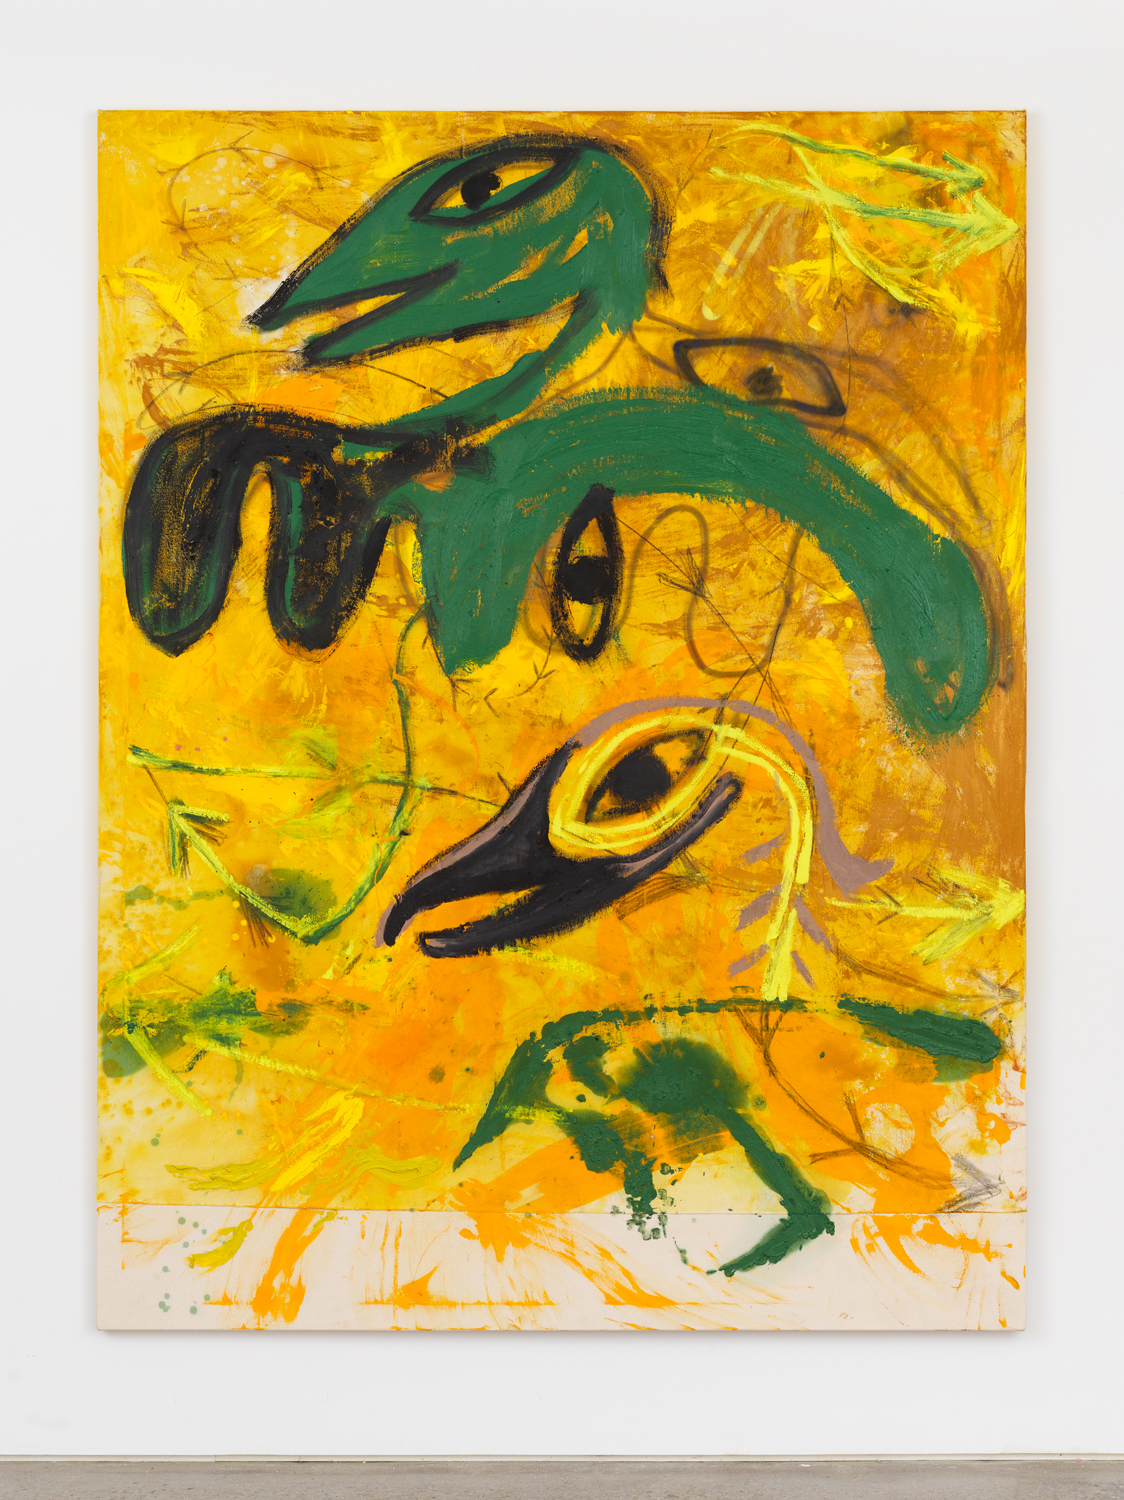 Bill Saylor, Breakers Gold, 2019, oil, spray paint, graphite, and Flashe on canvas, 84h x 64w in.